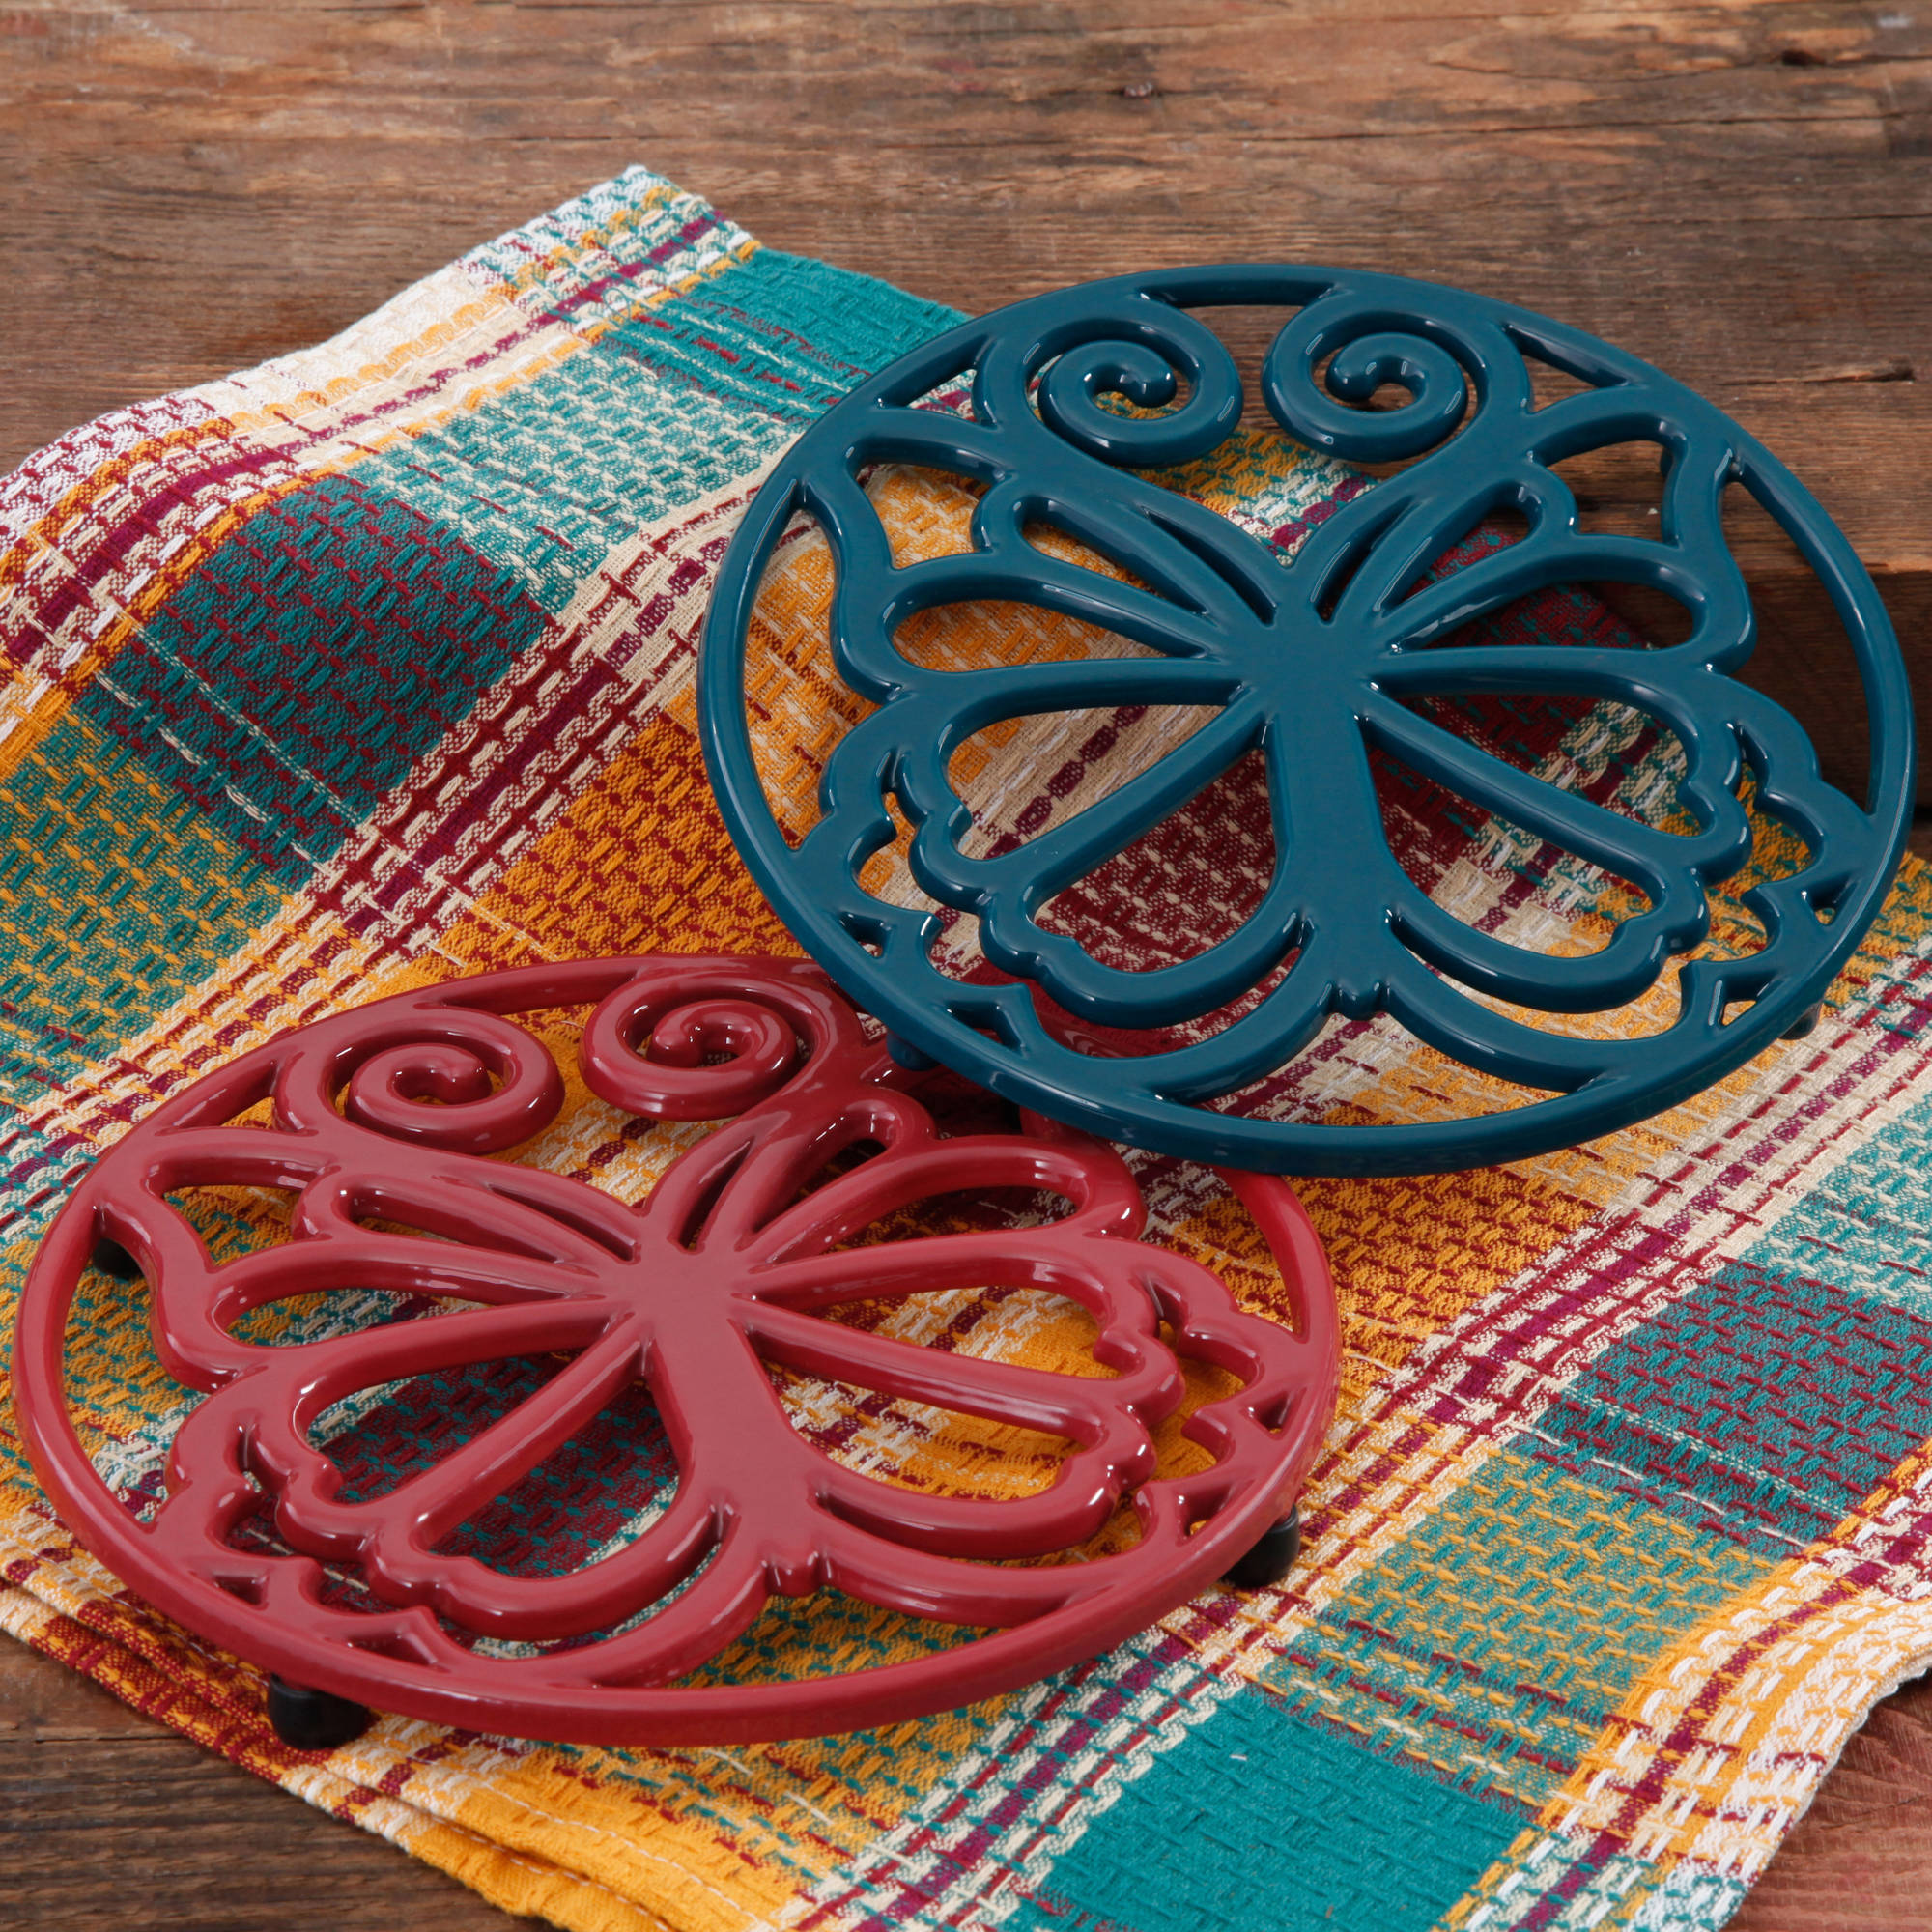 The Pioneer Woman Timeless Beauty 2-Pack 8  Claret & Teal Enameled Cast Iron Trivet Set